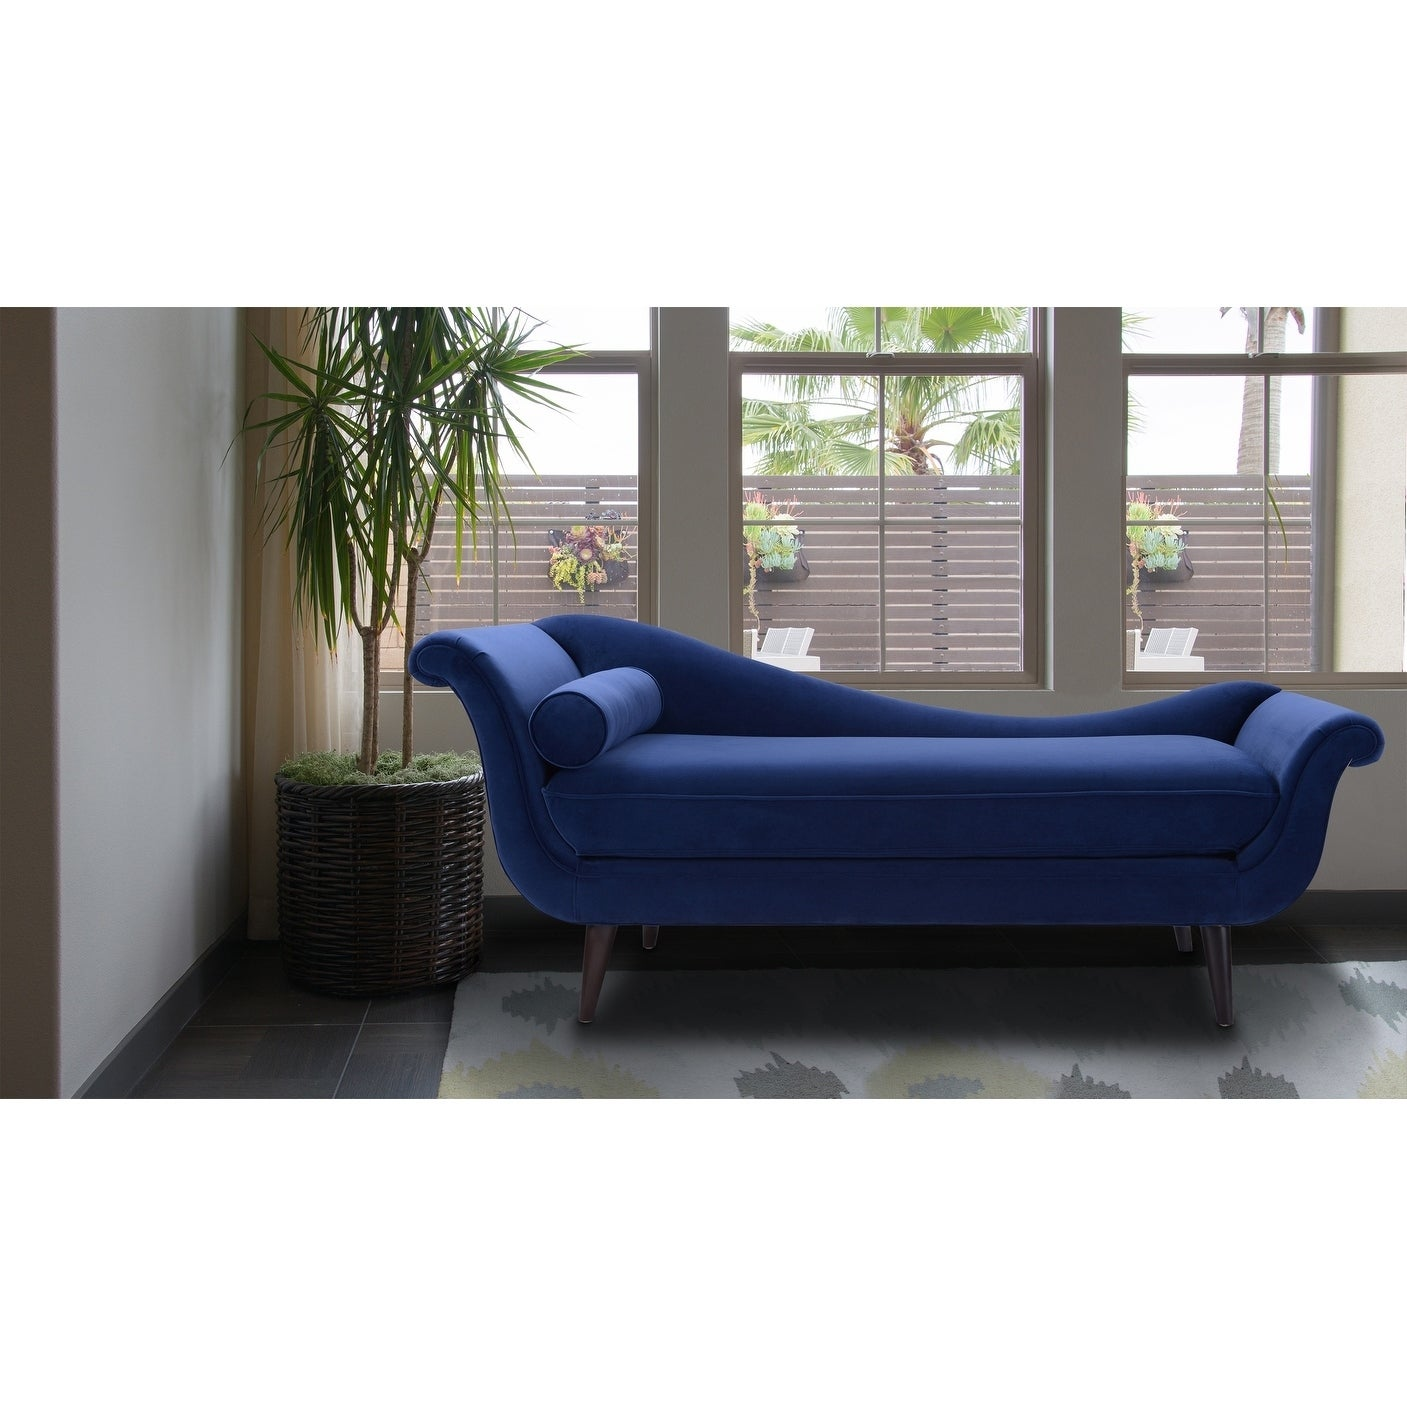 Marvelous Sandy Wilson Kai Chaise Lounge 70Lx30Wx29 5H Overstock Com Shopping The Best Deals On Living Room Chairs Spiritservingveterans Wood Chair Design Ideas Spiritservingveteransorg